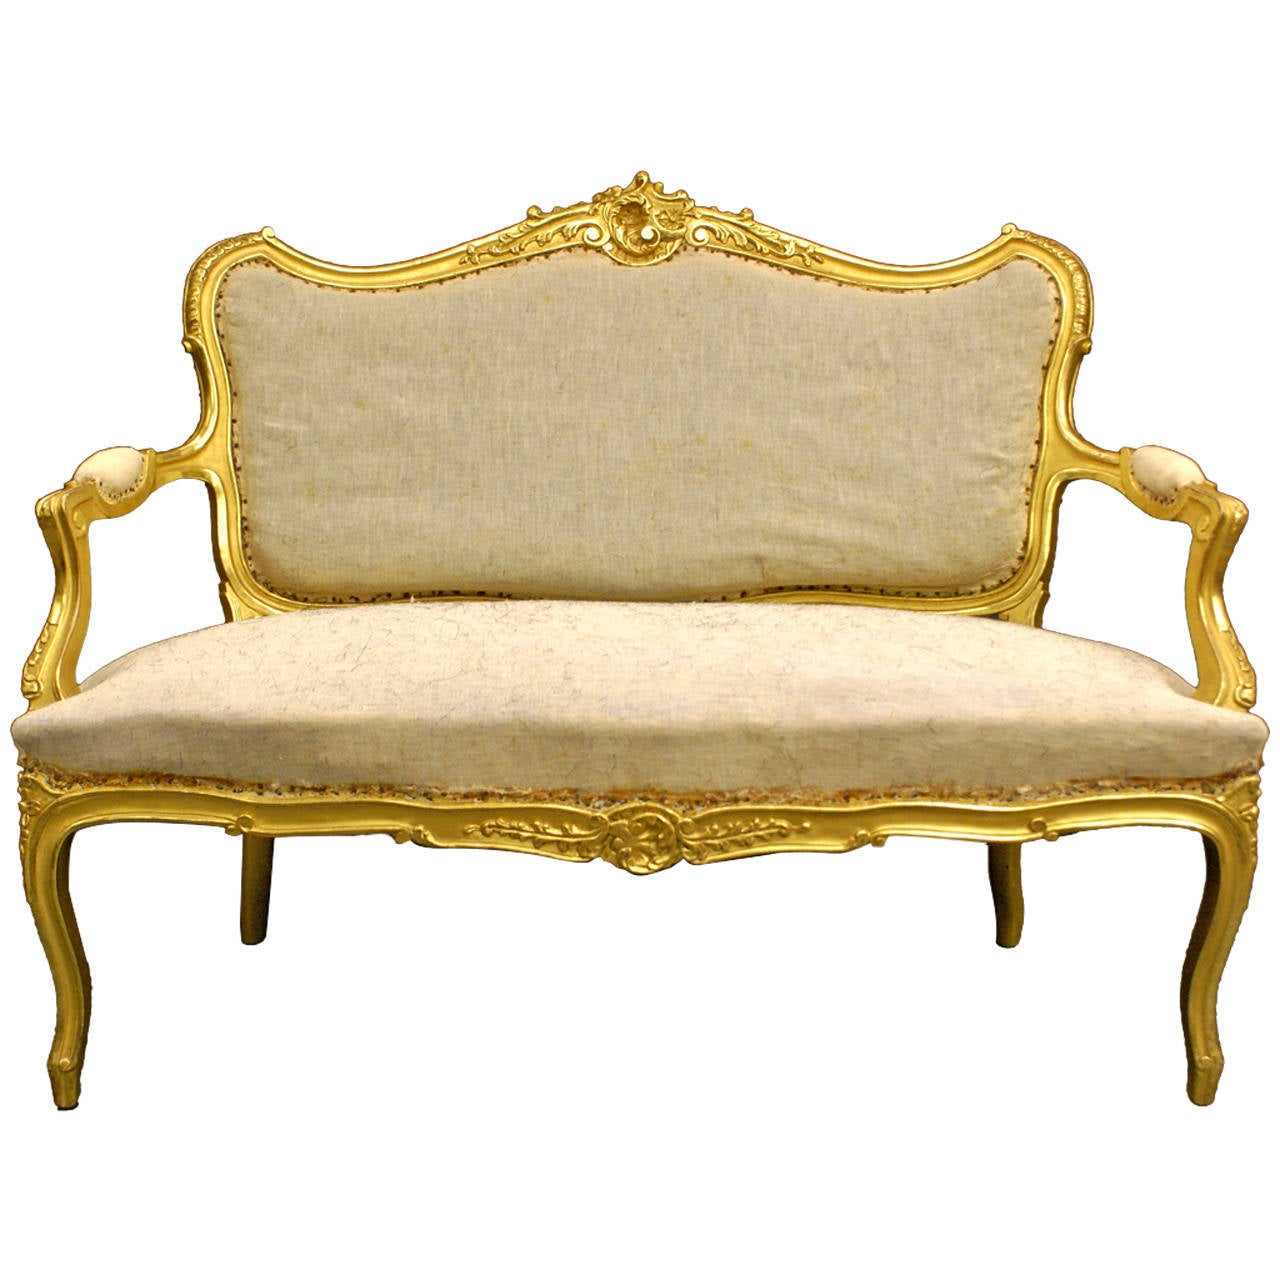 A Highly Decorative Venetian Carved Gilt Wood Sofa At 1stdibs